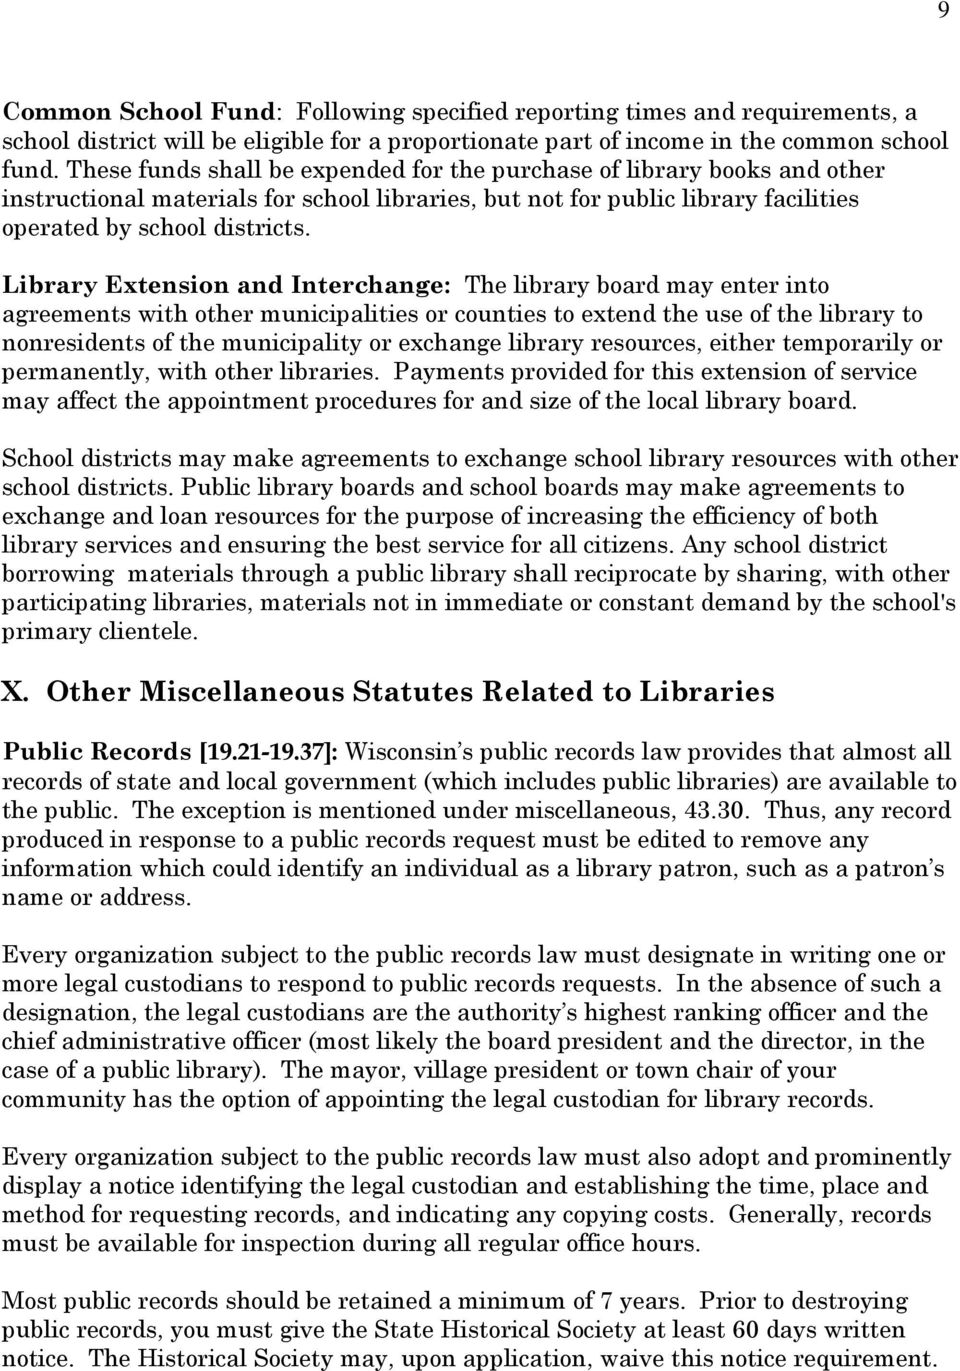 Library Extension and Interchange: The library board may enter into agreements with other municipalities or counties to extend the use of the library to nonresidents of the municipality or exchange